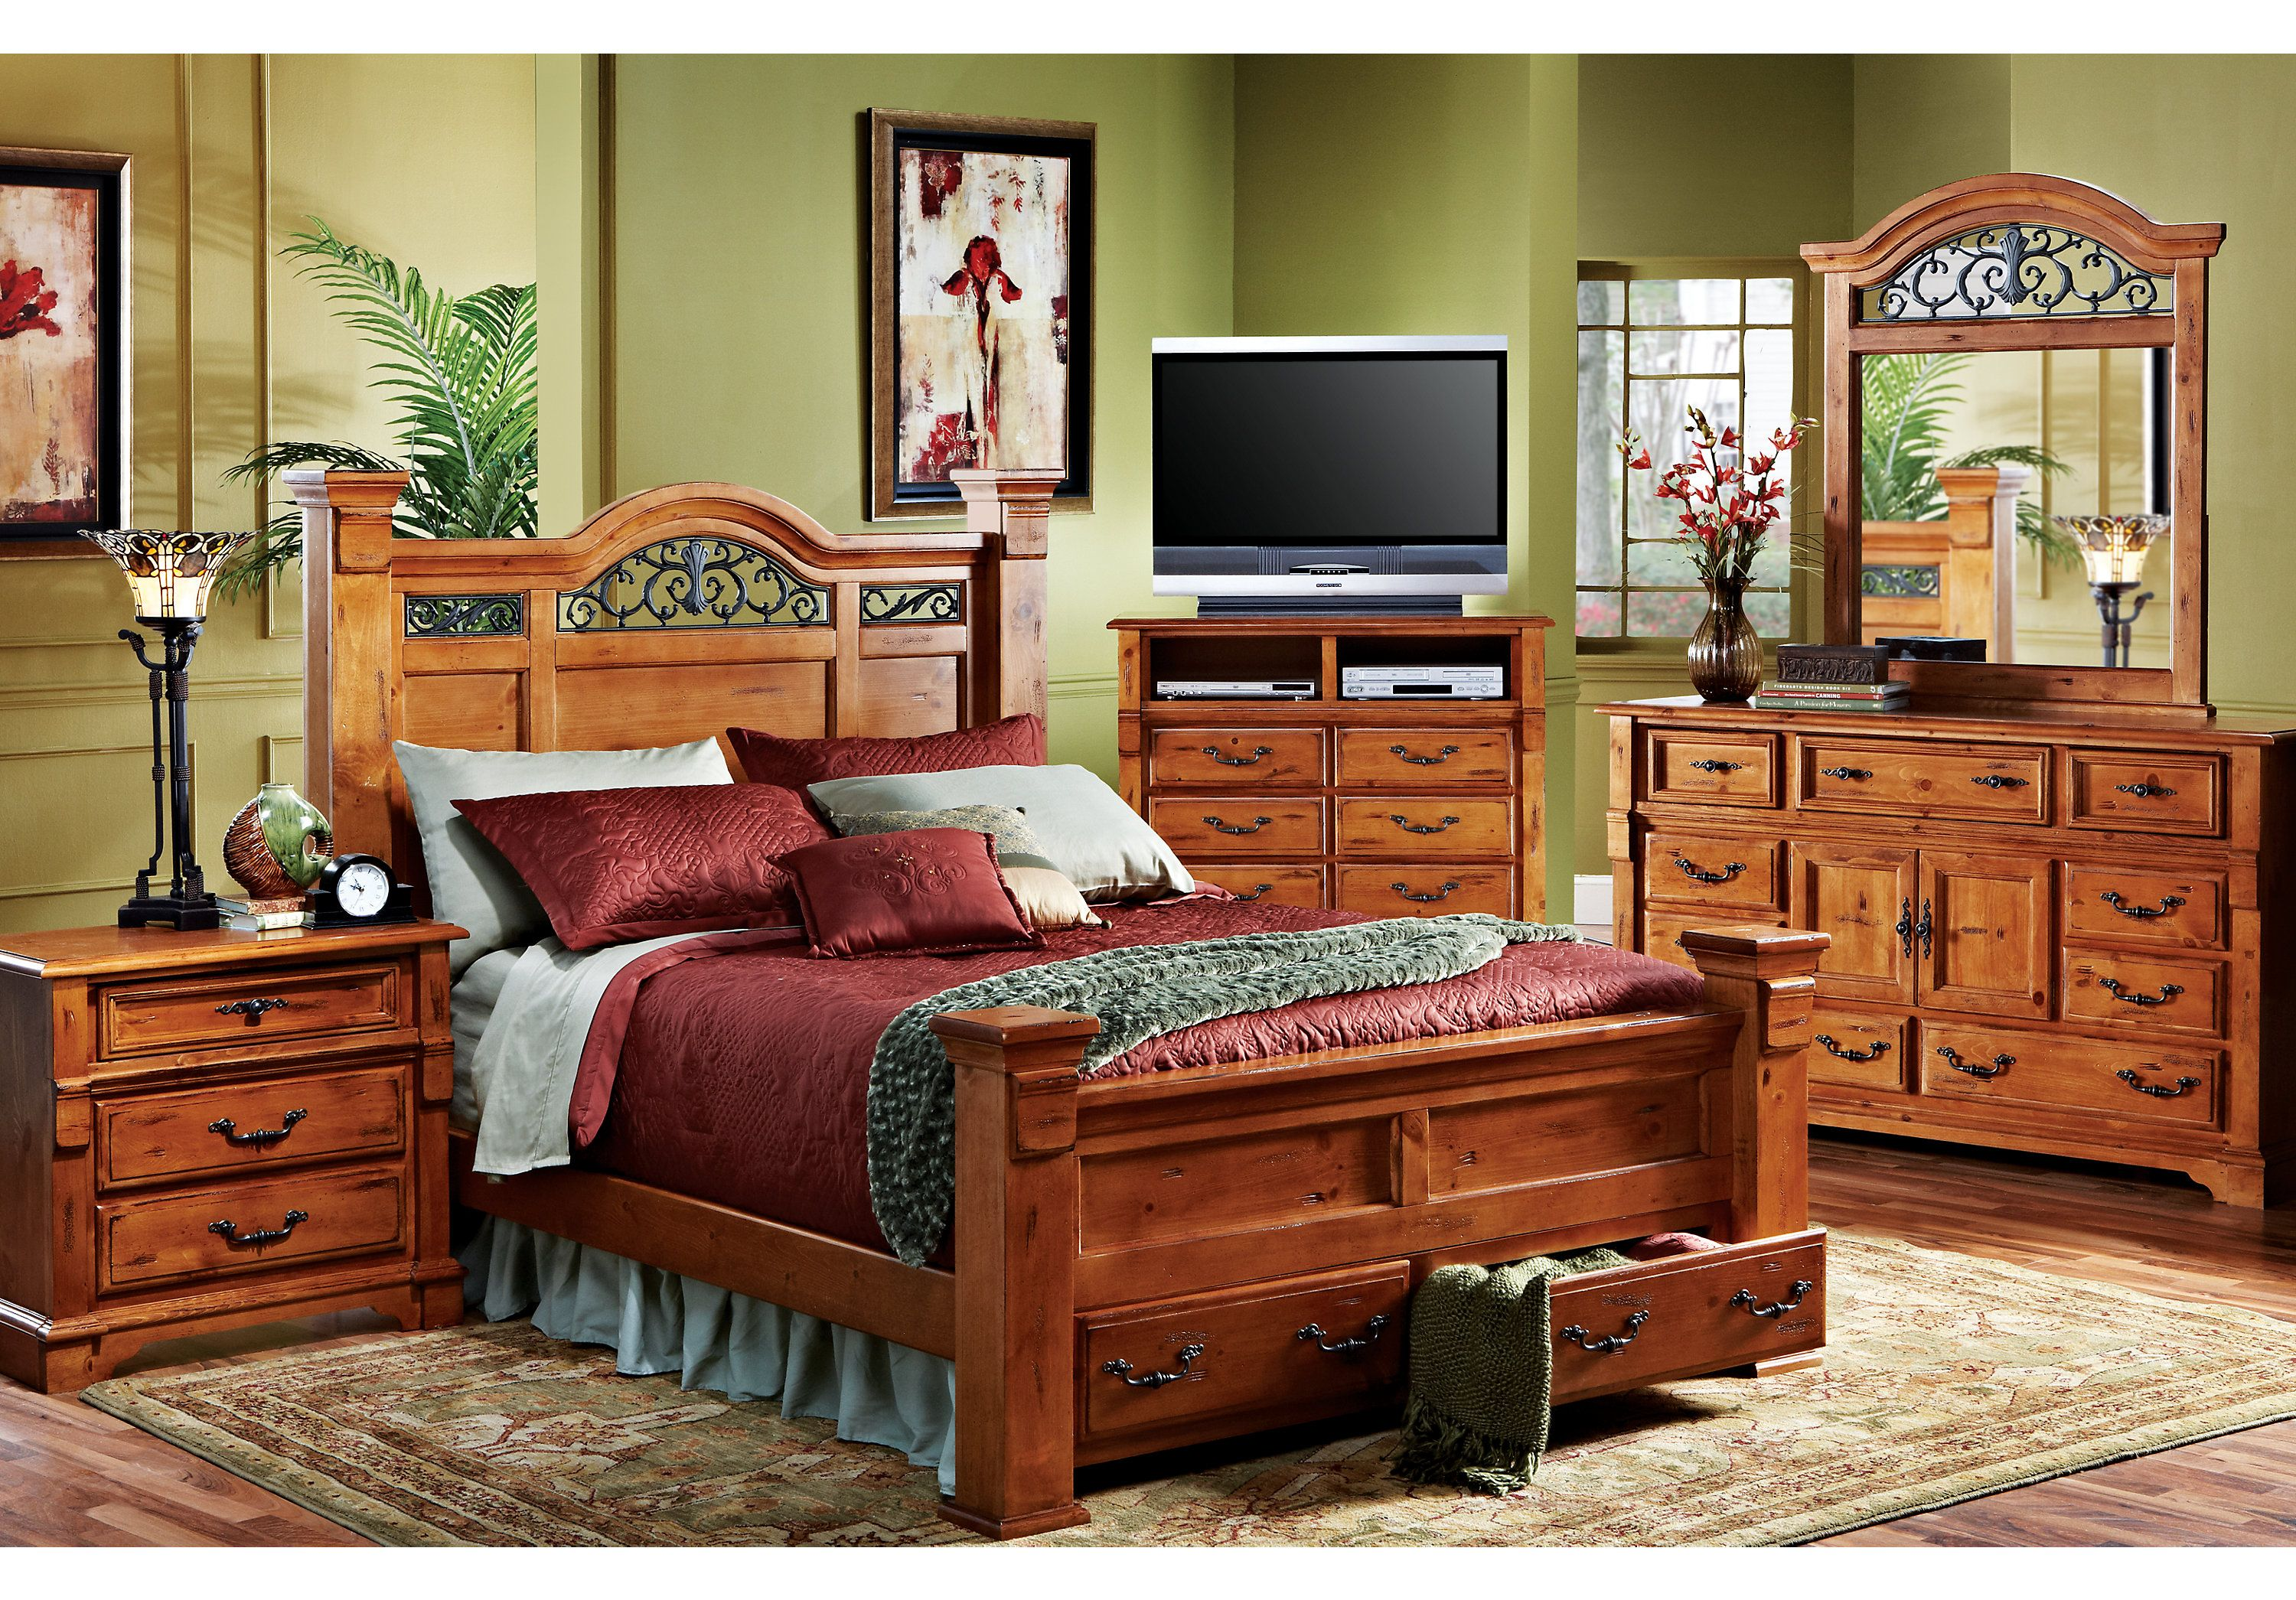 Shop For A Merrifield 5 Pc Queen Storage Bedroom At Rooms To Go. Find Bedroom  Sets That Will Look Great In Your Home And Complement The Rest Of Your ...